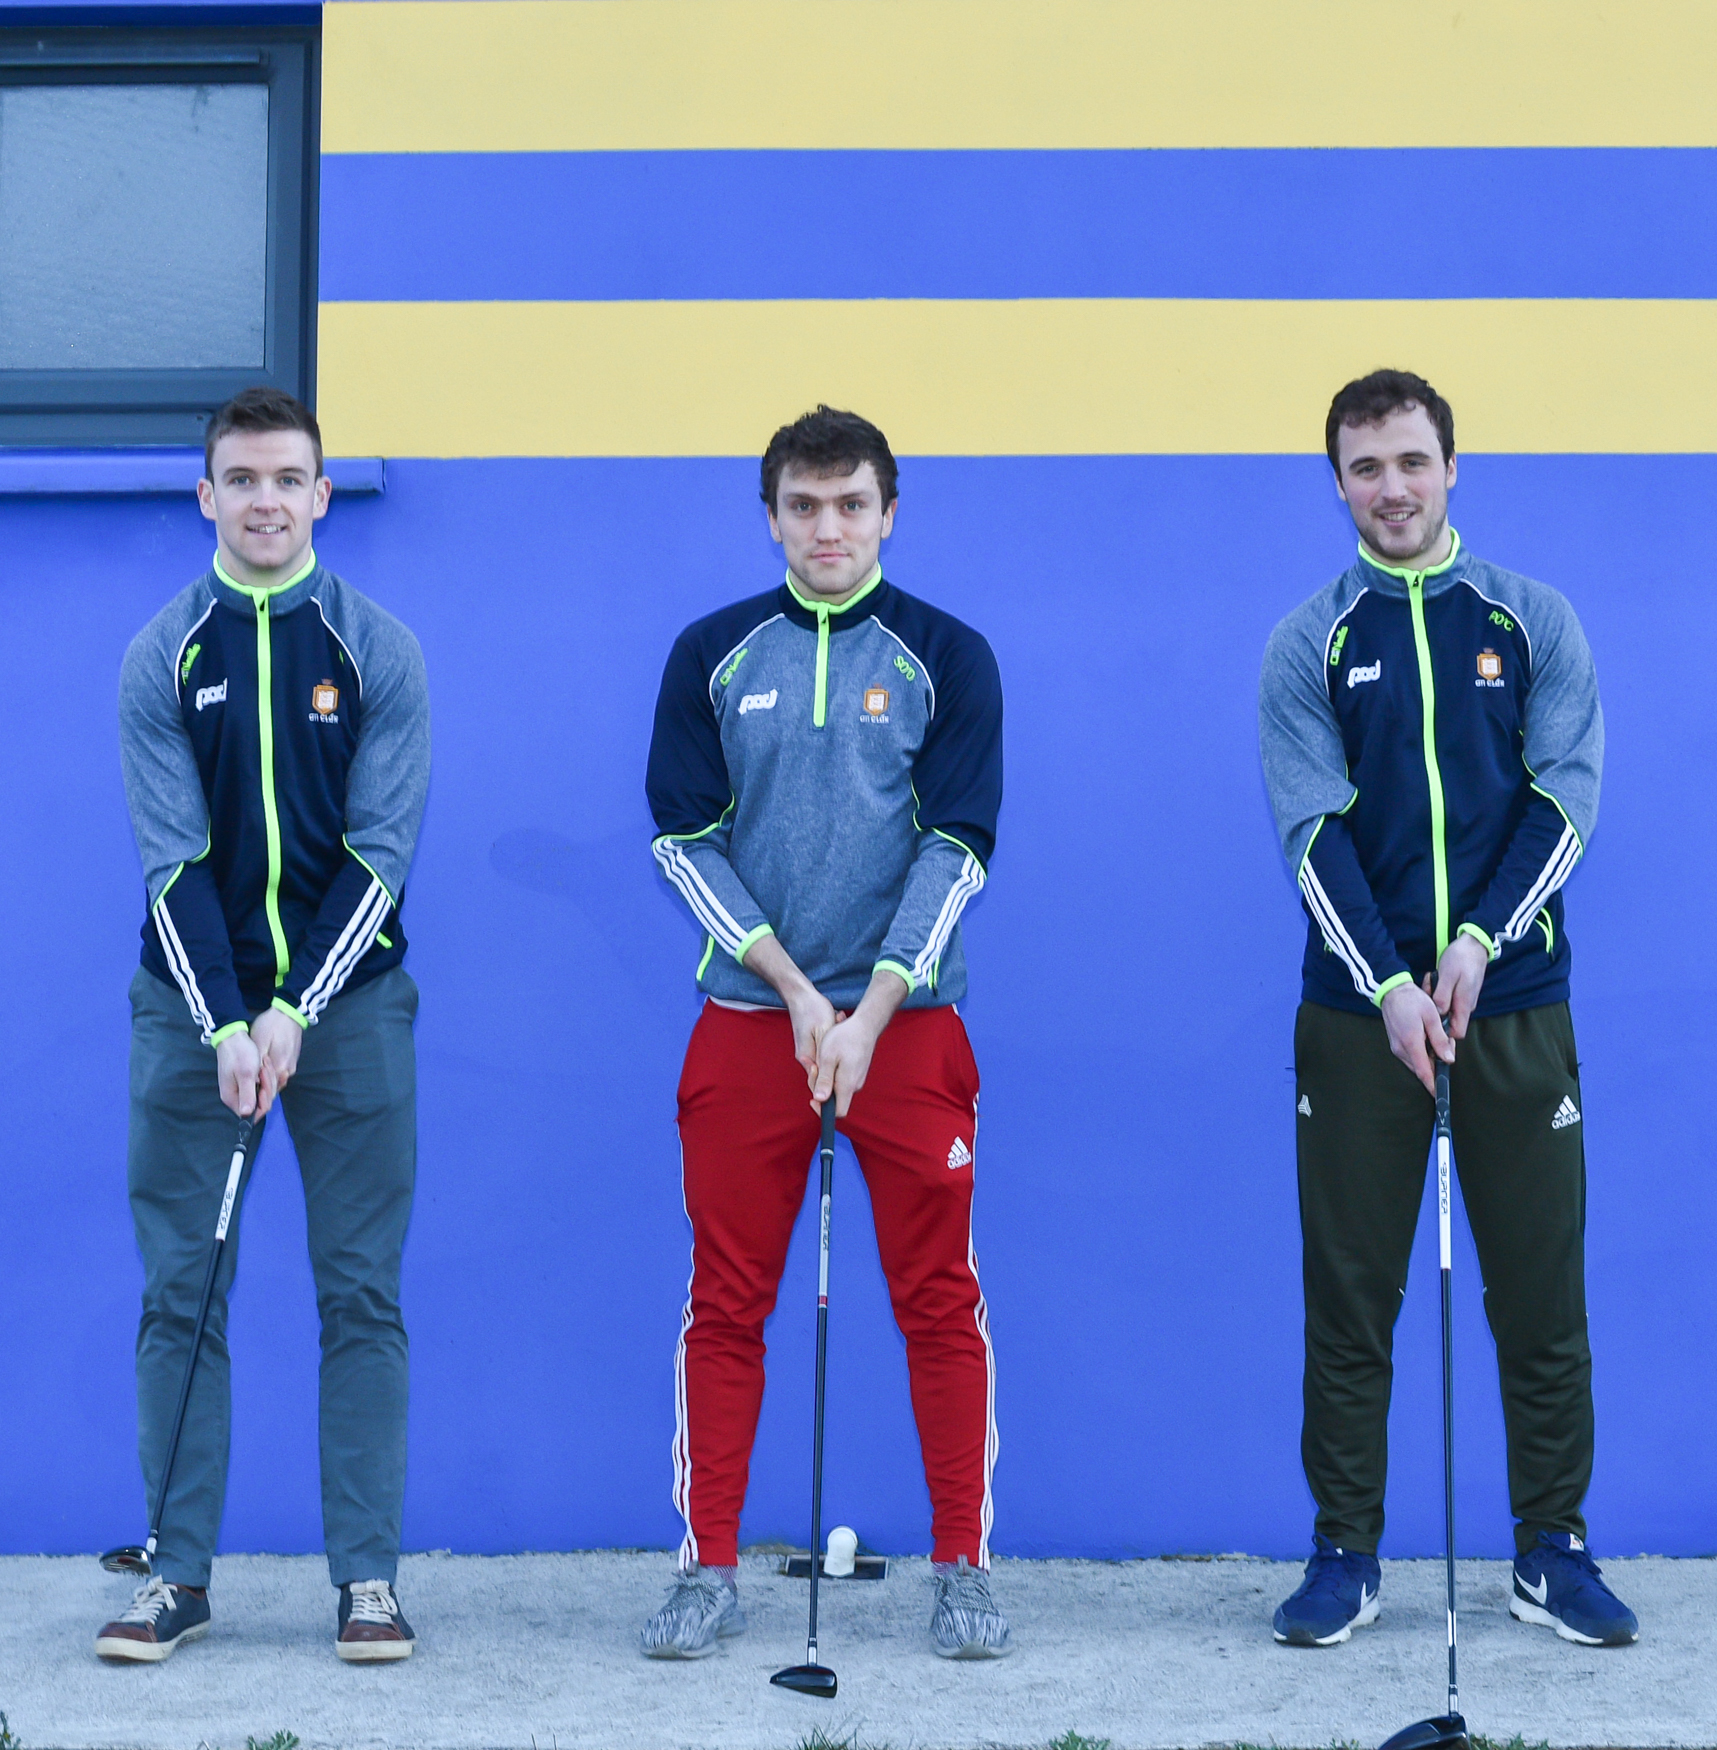 Clare hurlers Tony Kelly, Shane O'Donnell and Patrick O'Connor practising their swin. Photo by Martin Connolly